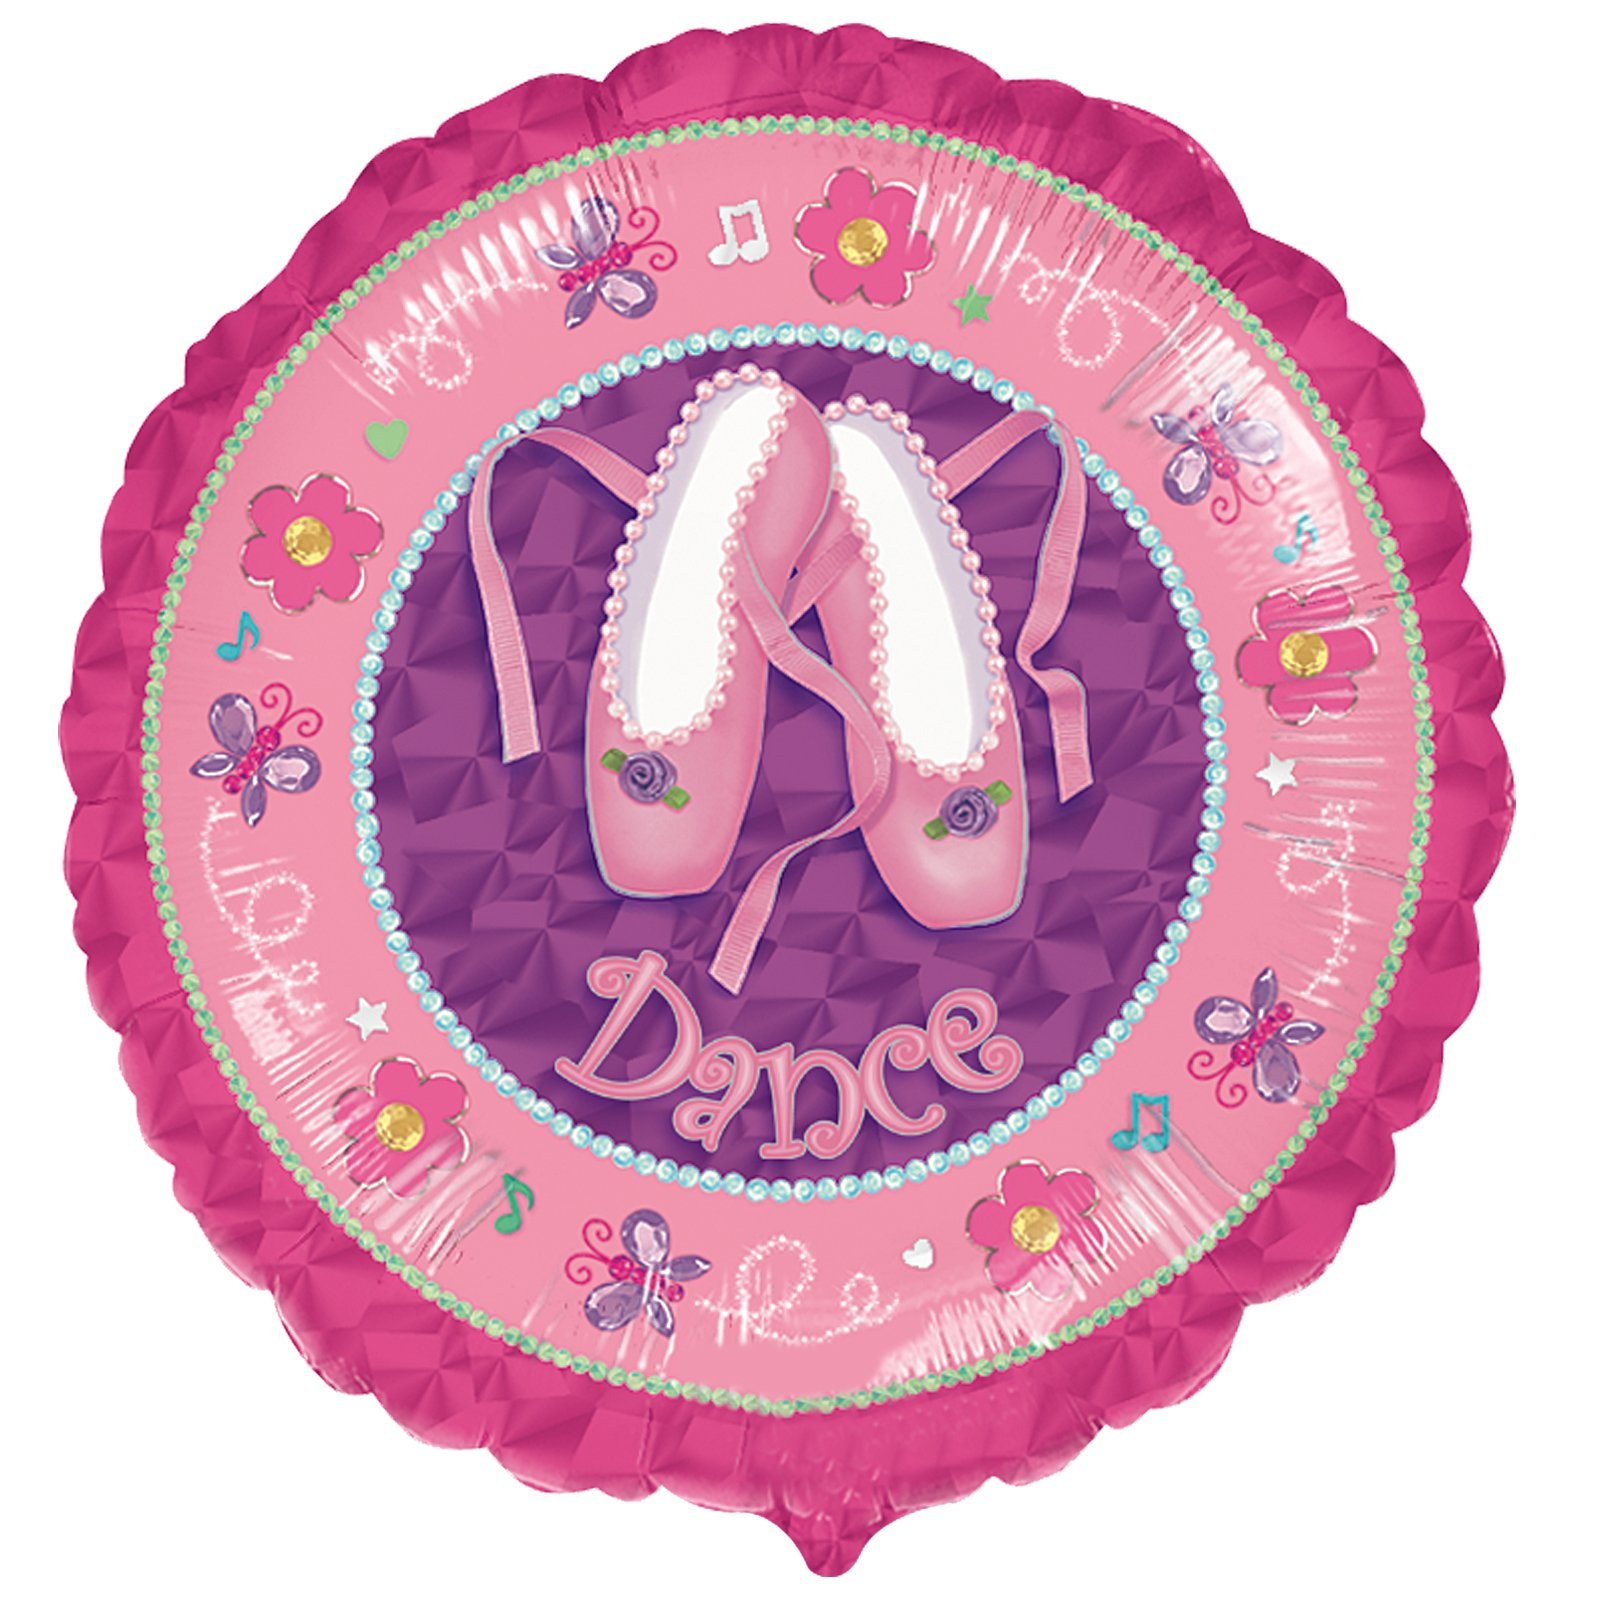 ''Dance'' Ballet Shoes 18'' Mylar Balloons Recital Ballerina Party by Anagram (Image #1)